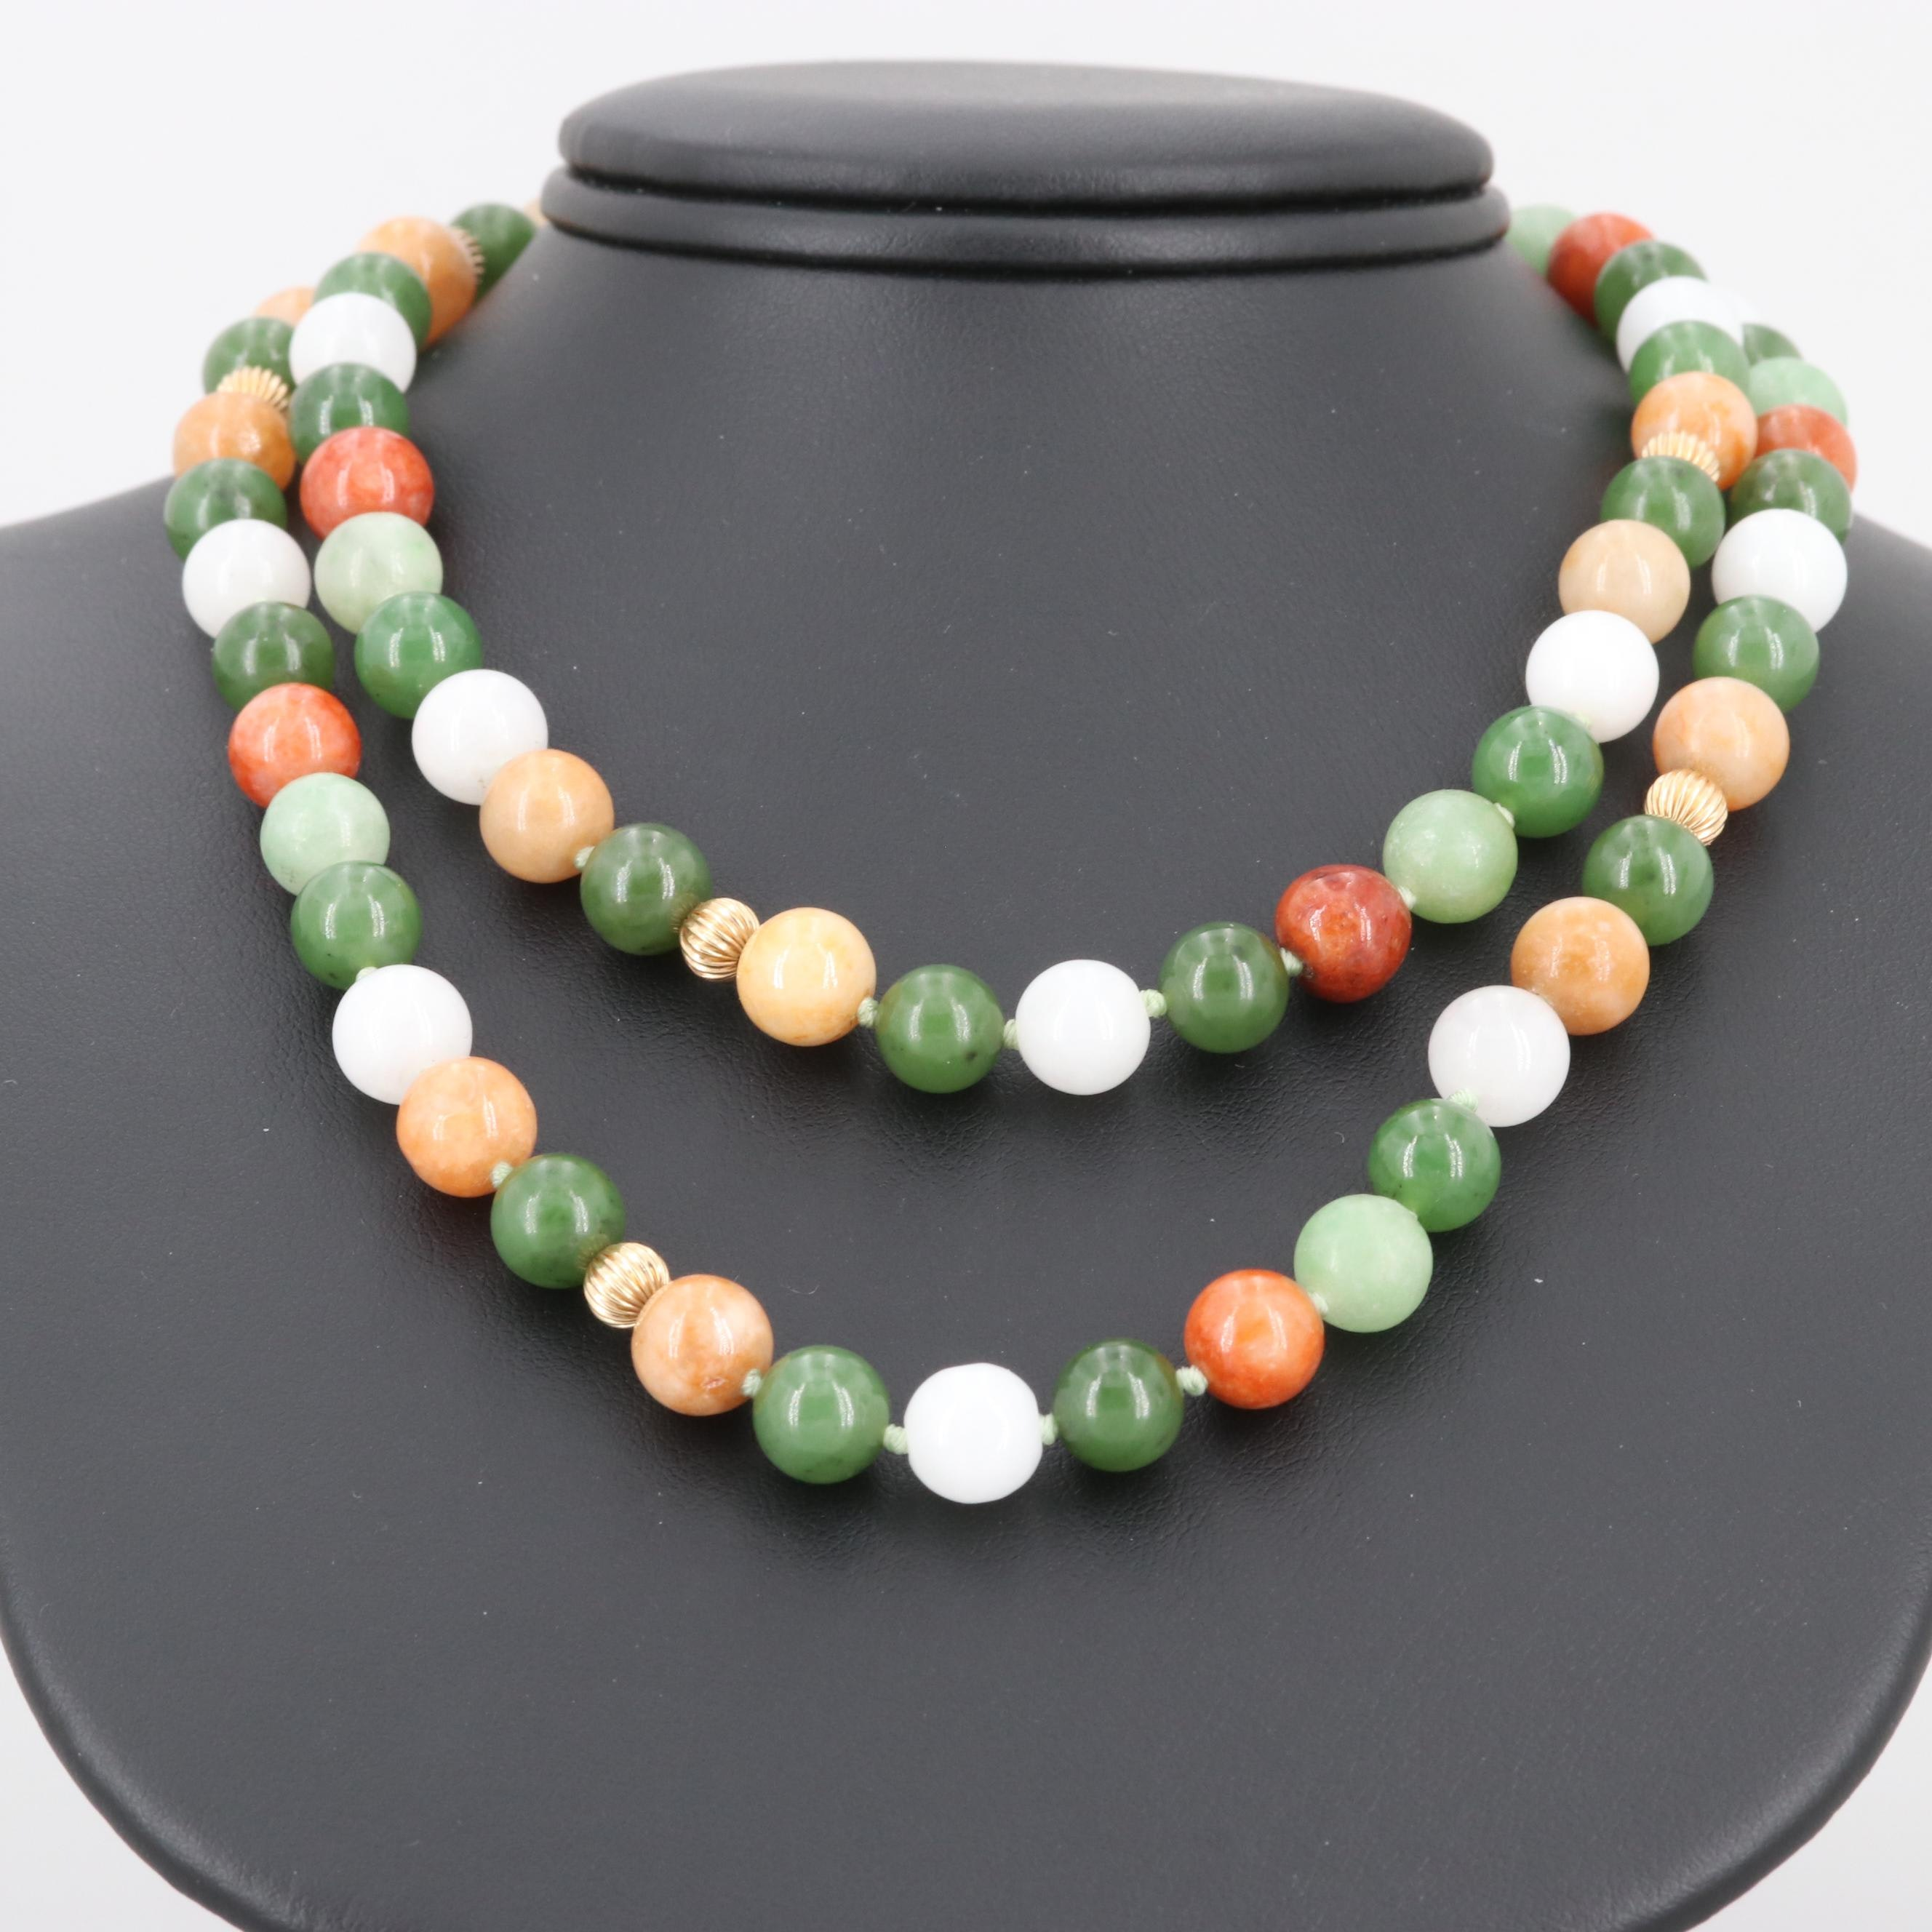 Nephrite, Quartz and Jadeite Endless Necklace with 14K Yellow Gold Stations